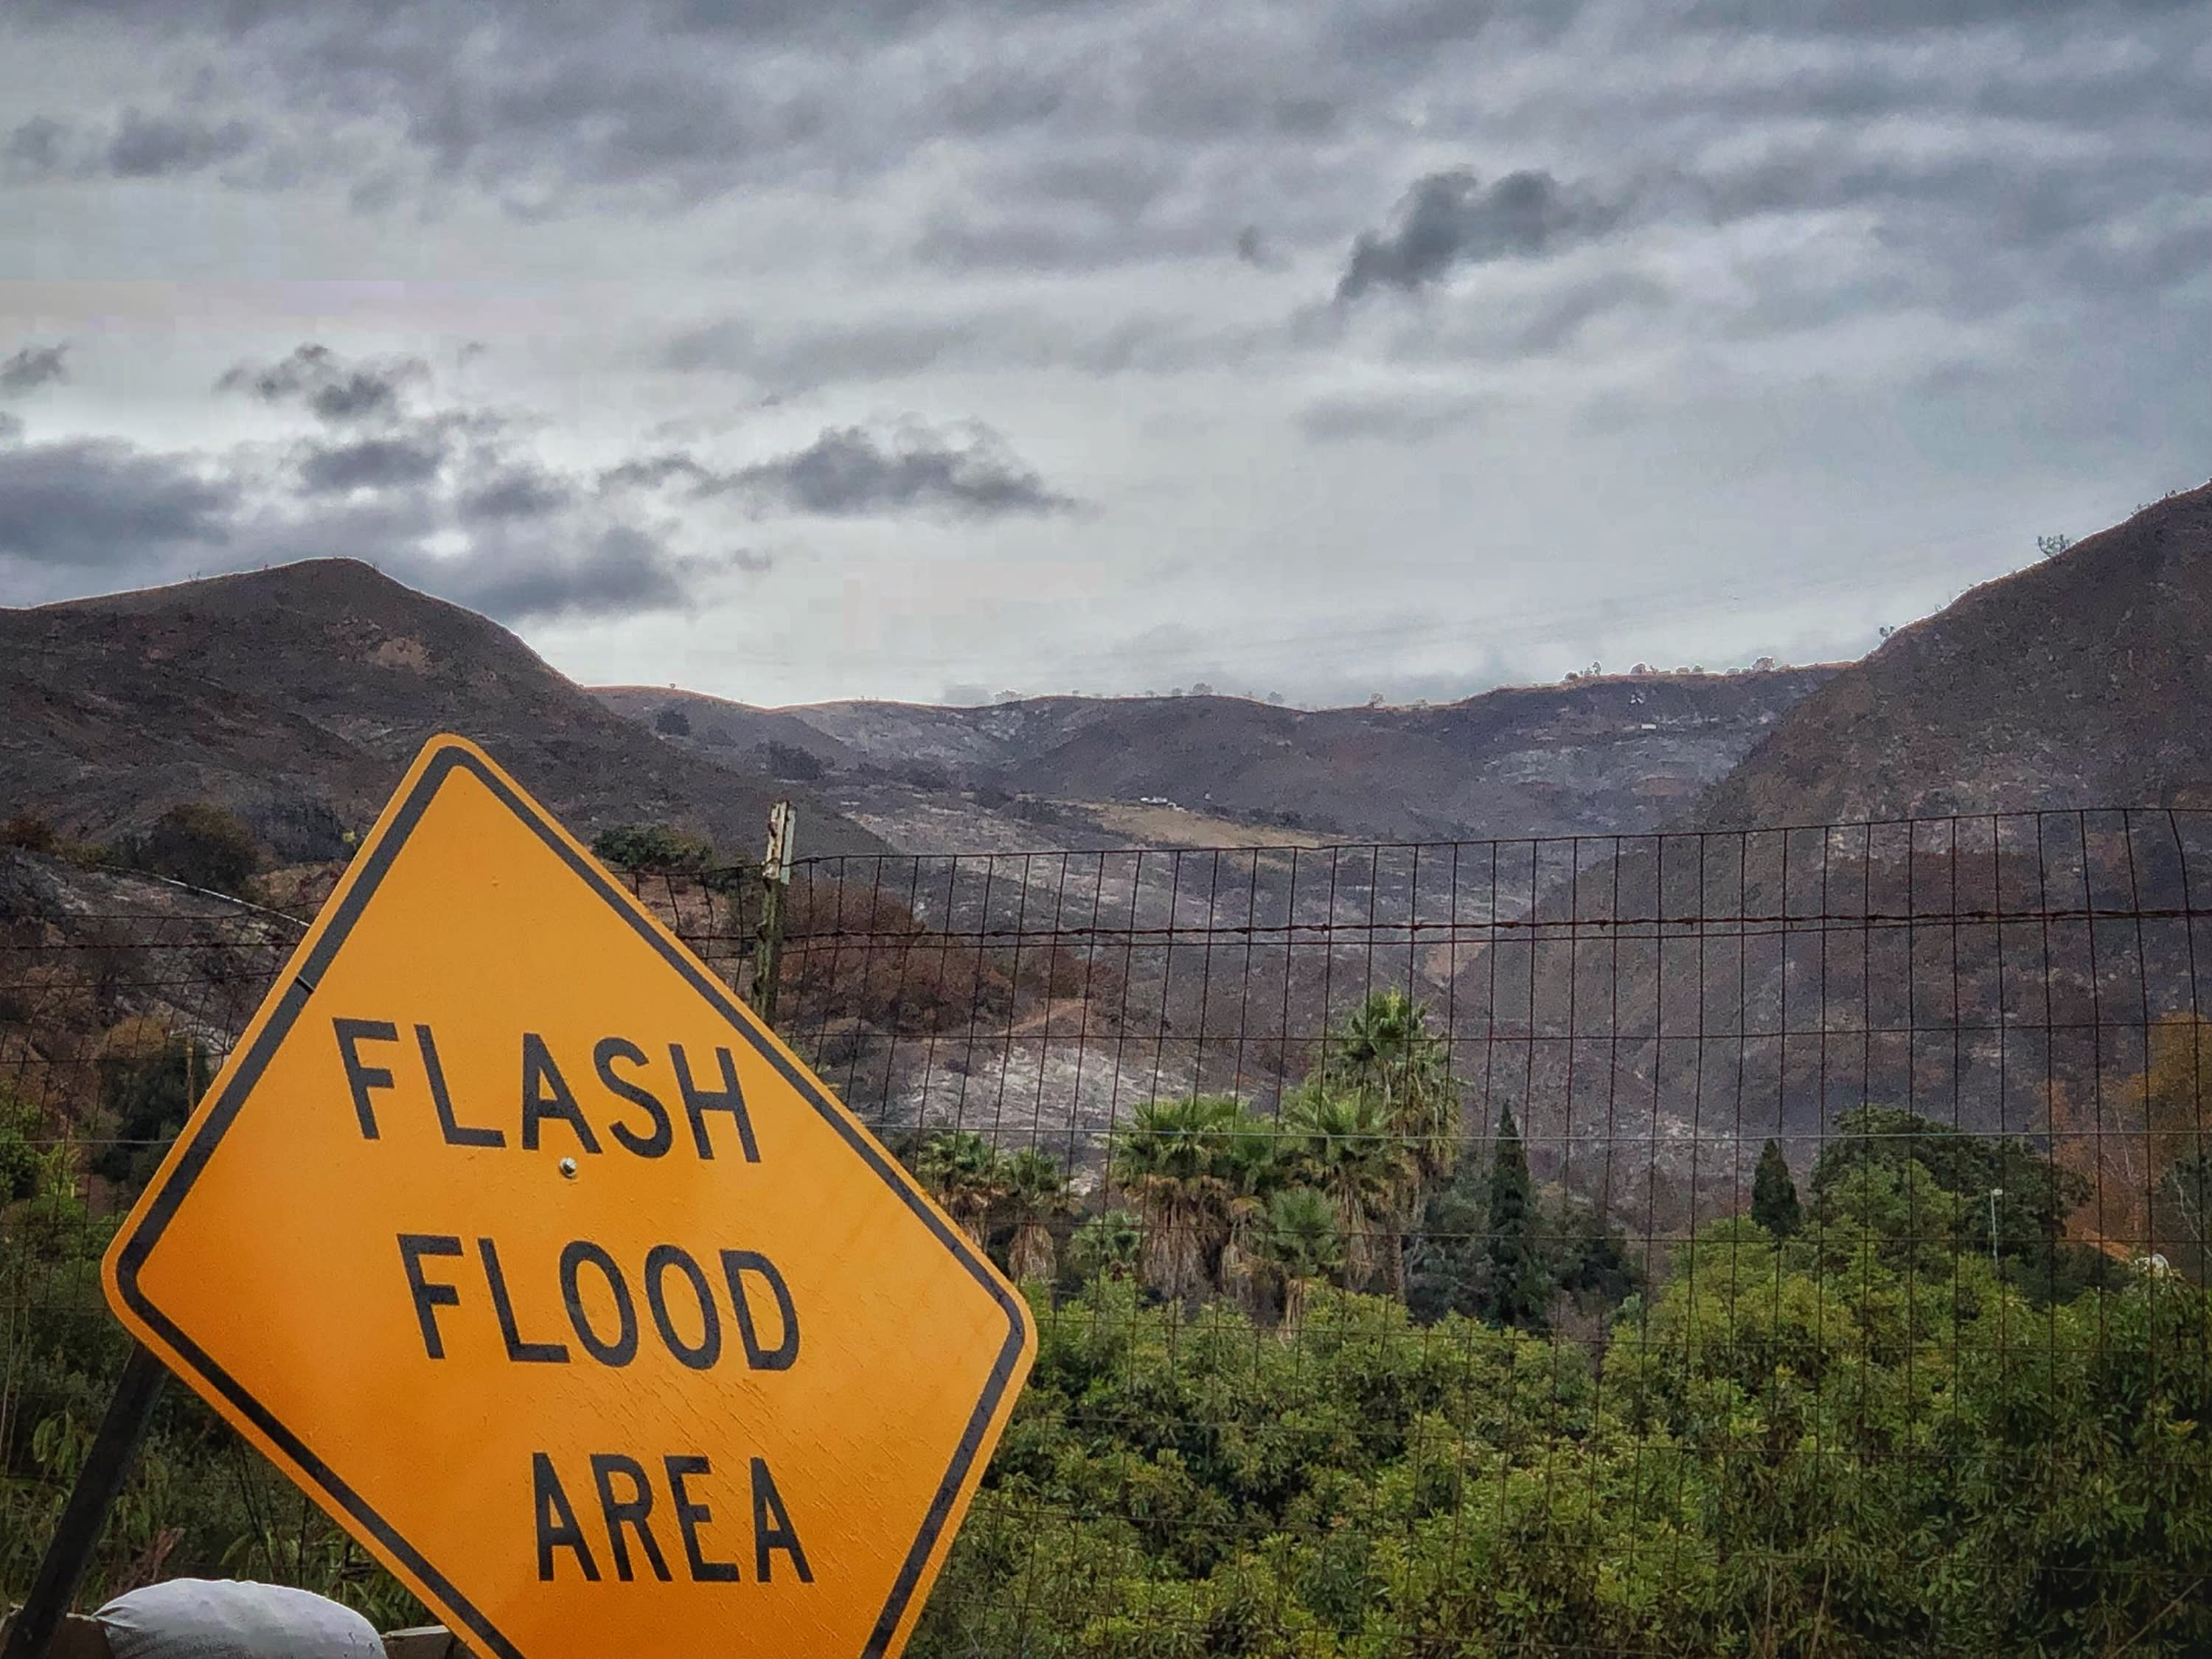 <p>A flash flood area sign is posted, as evacuations have been issued for several fire-ravaged communities in Santa Barbara, Calif., Monday, Jan. 8, 2018. (Photo: Mike Eliason/Santa Barbara County Fire Department via AP) </p>